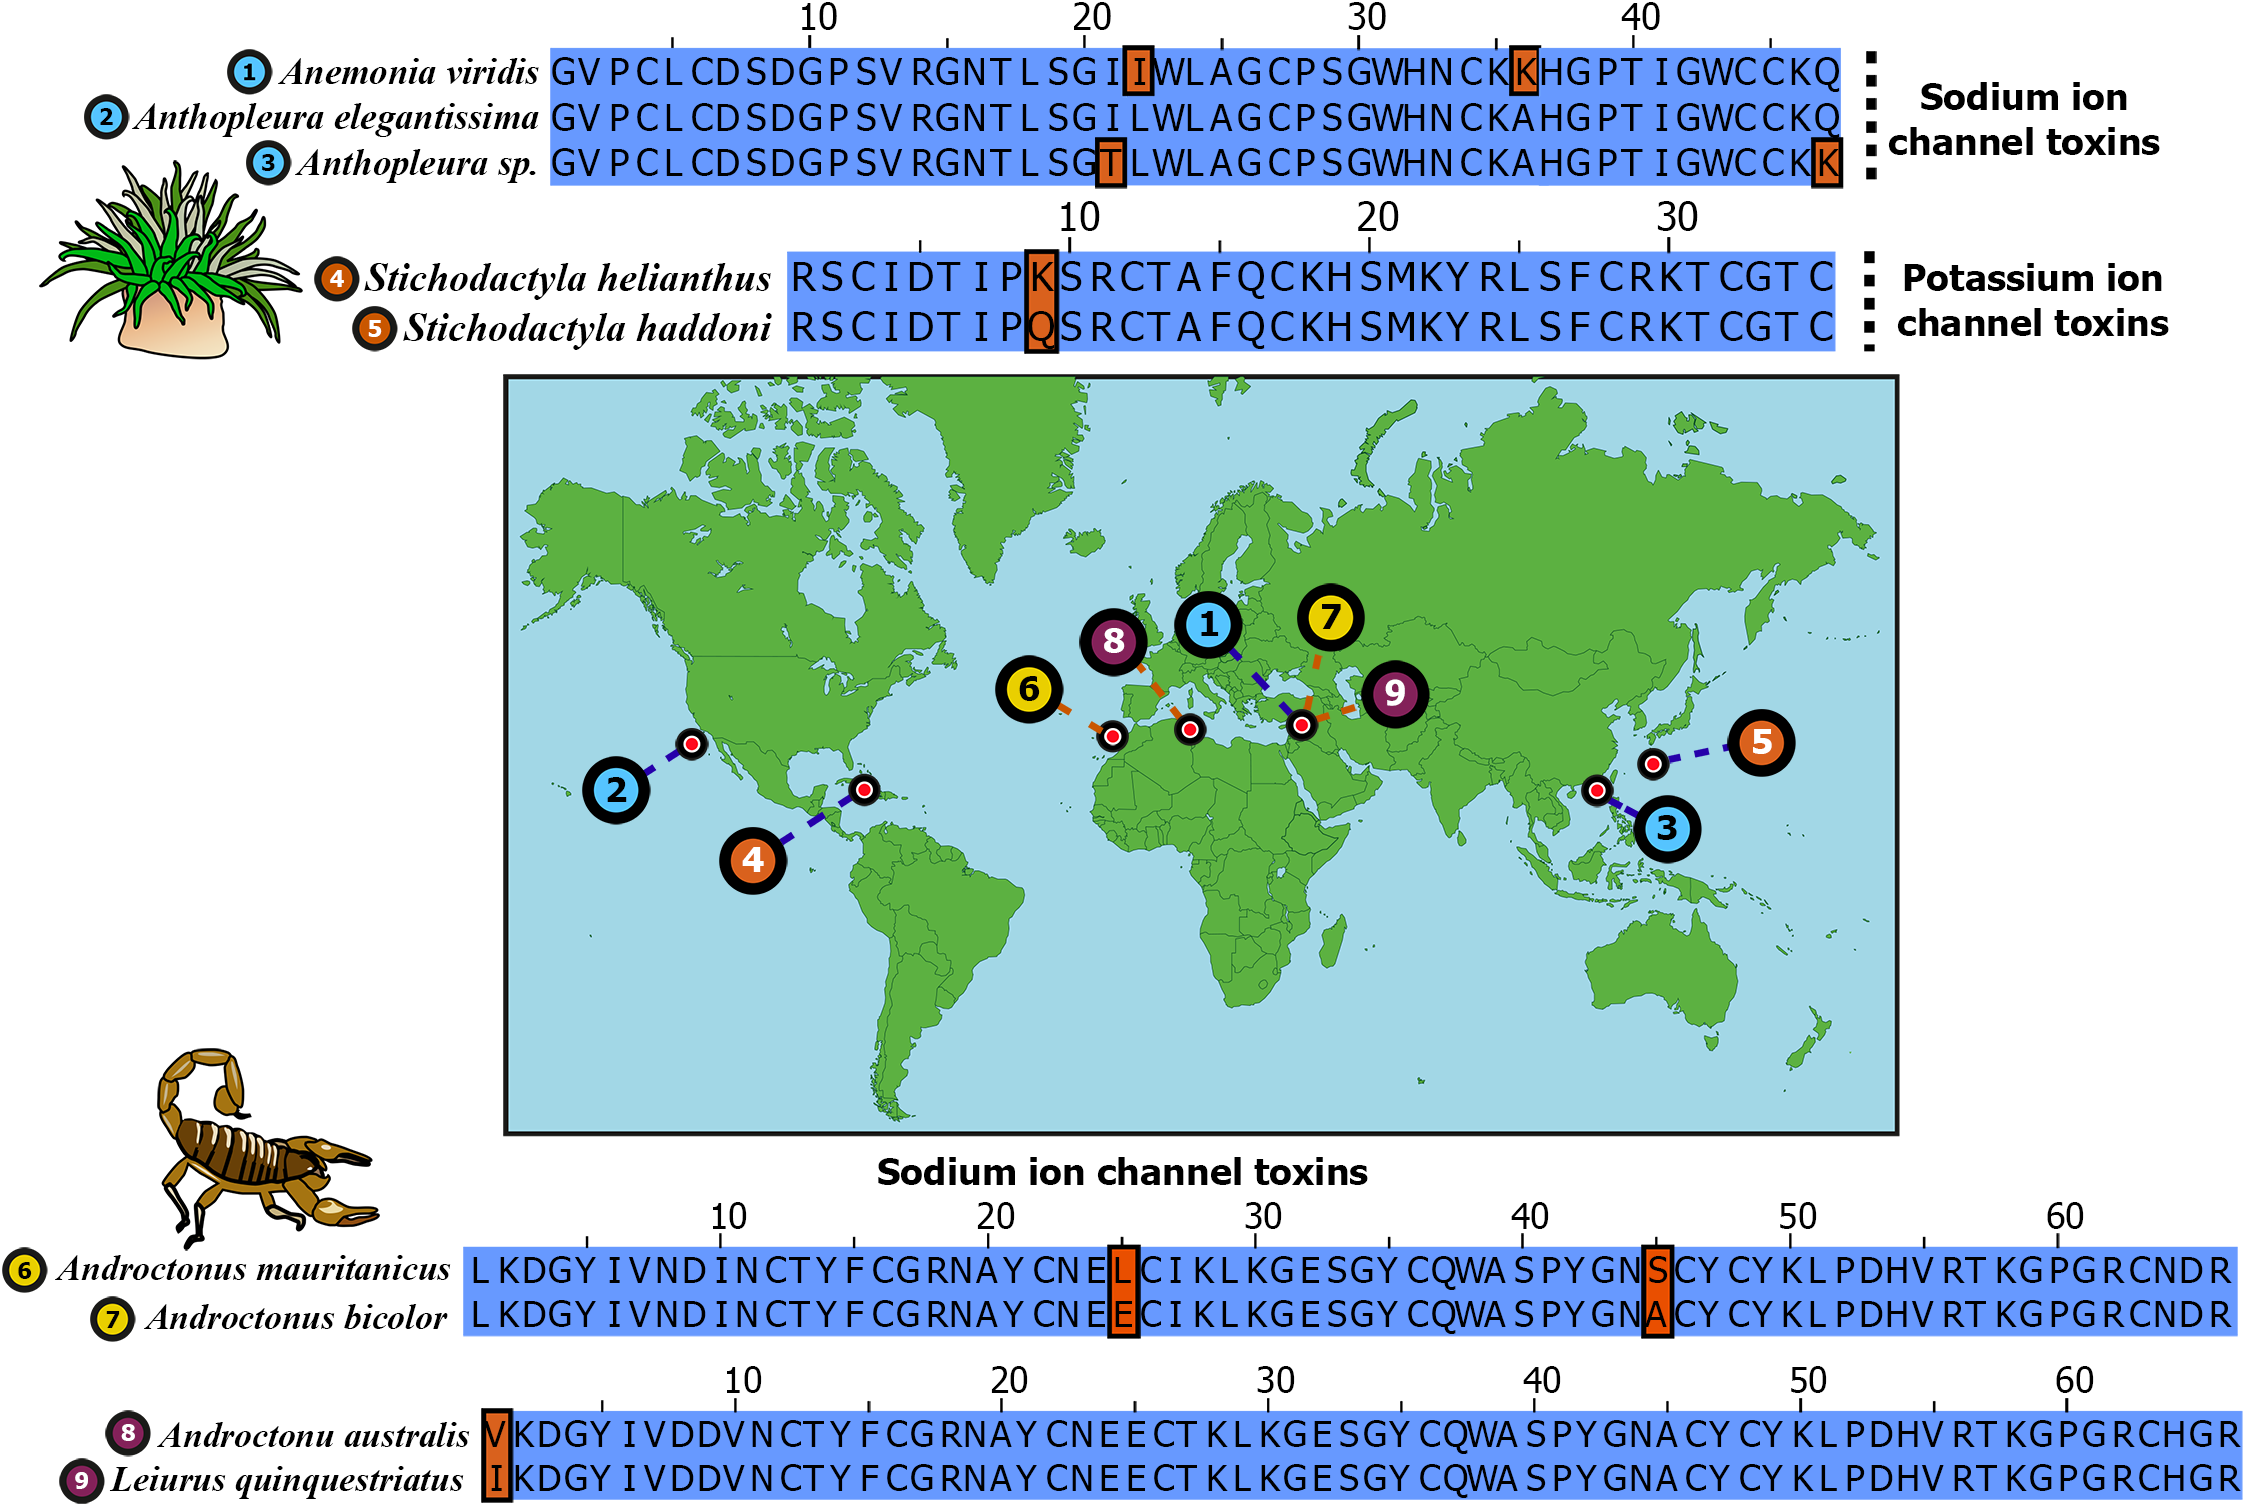 Remarkable sequence conservation in distantly related toxins.